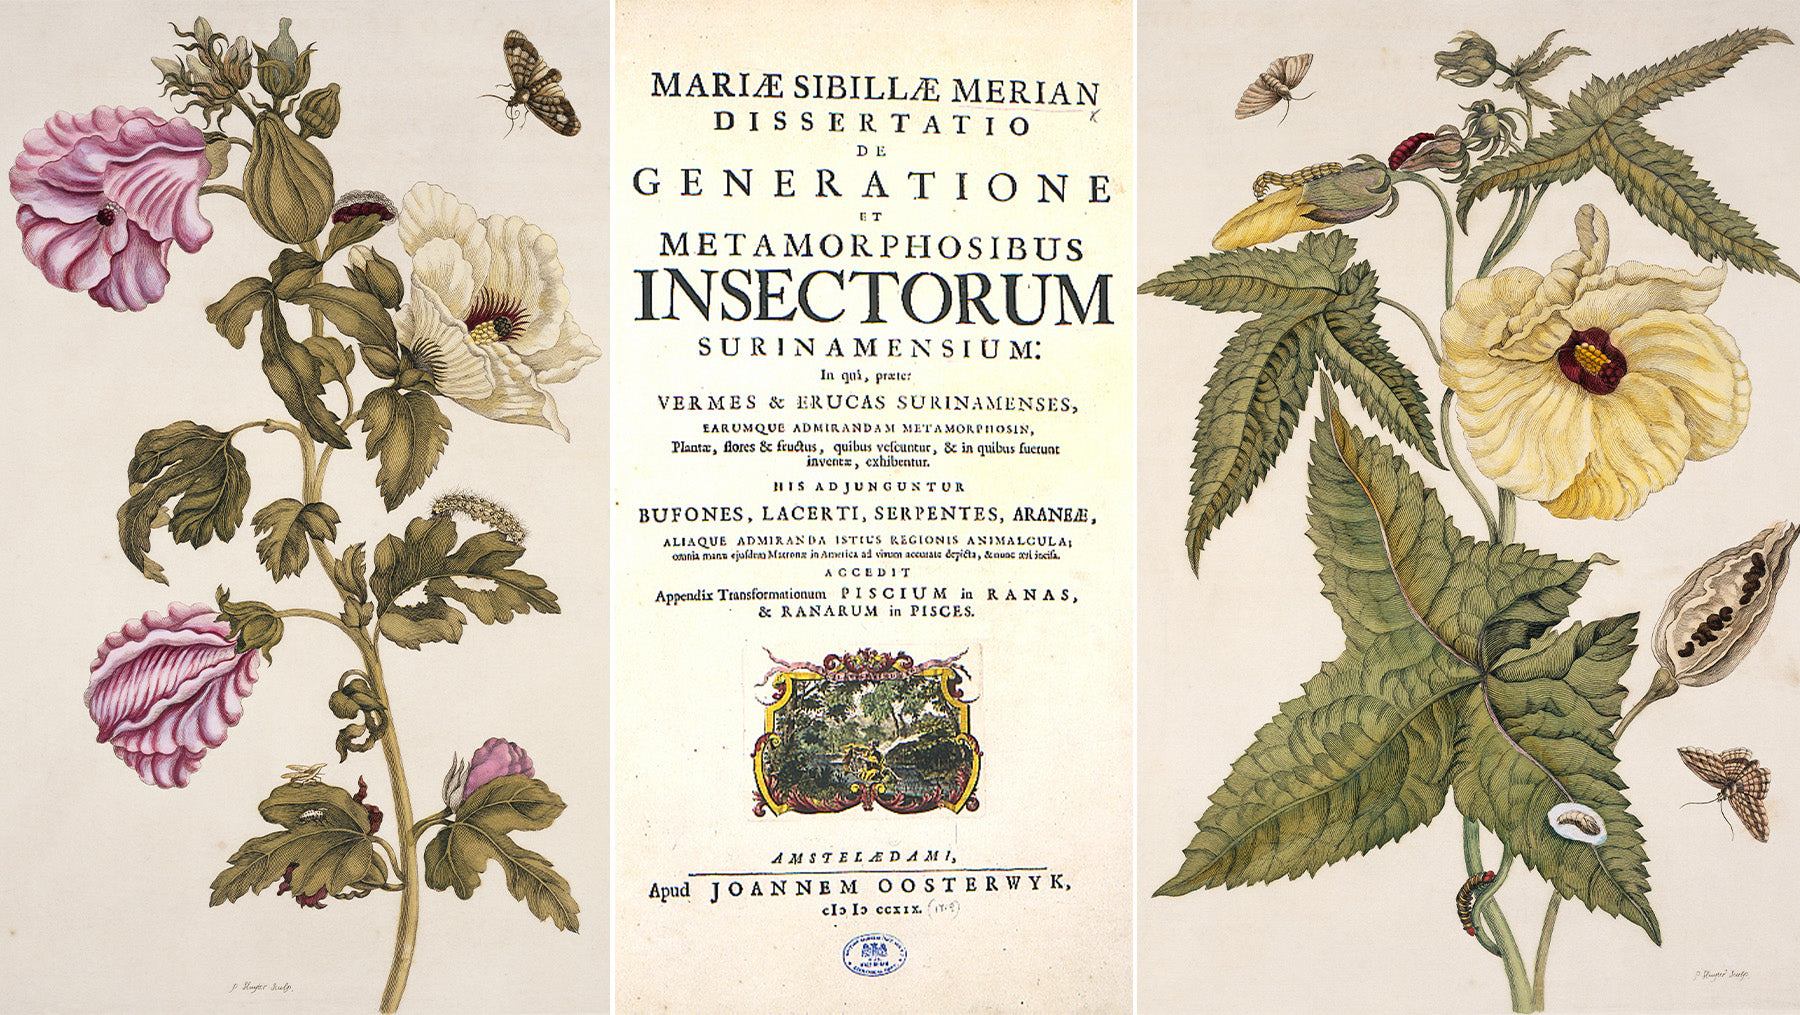 The title page of Maria Sibylla Merian's seminal work on insect metamorphasis with illustrations - Metamorphosis Insectorum Surinamese